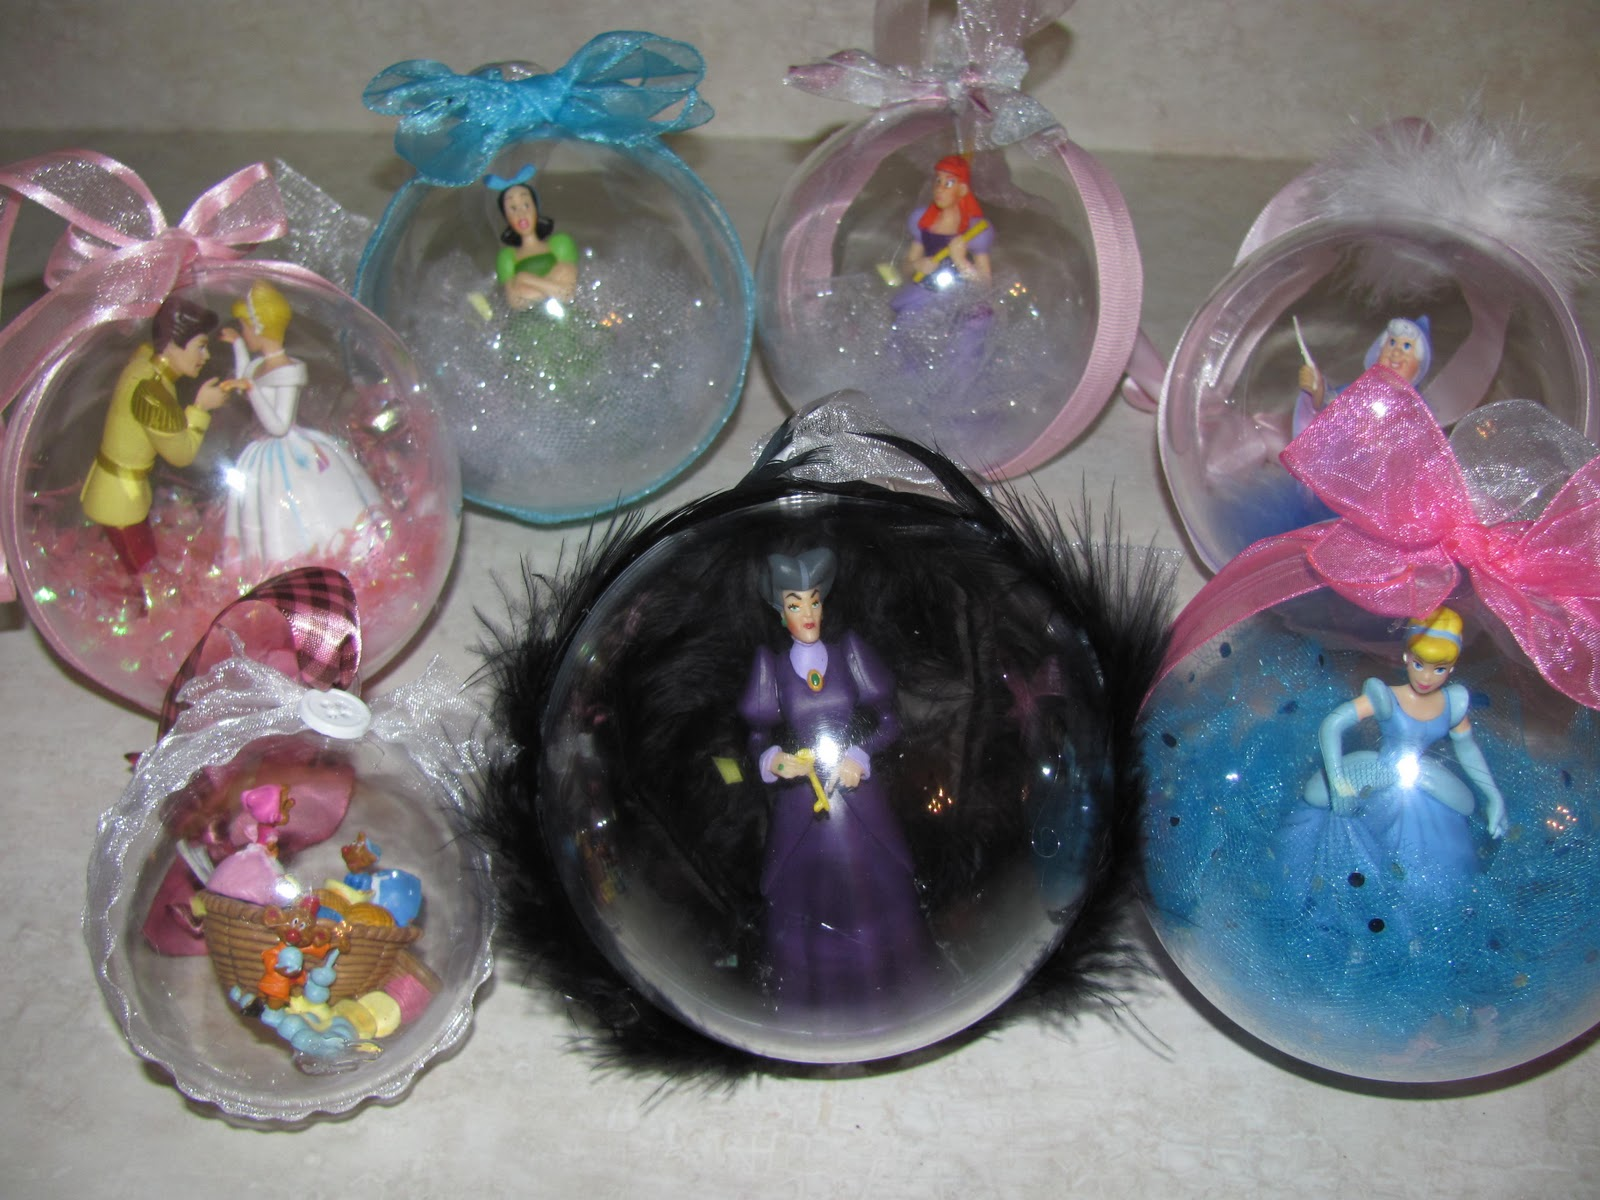 20 DIY Disney Ornaments 12 03 2014